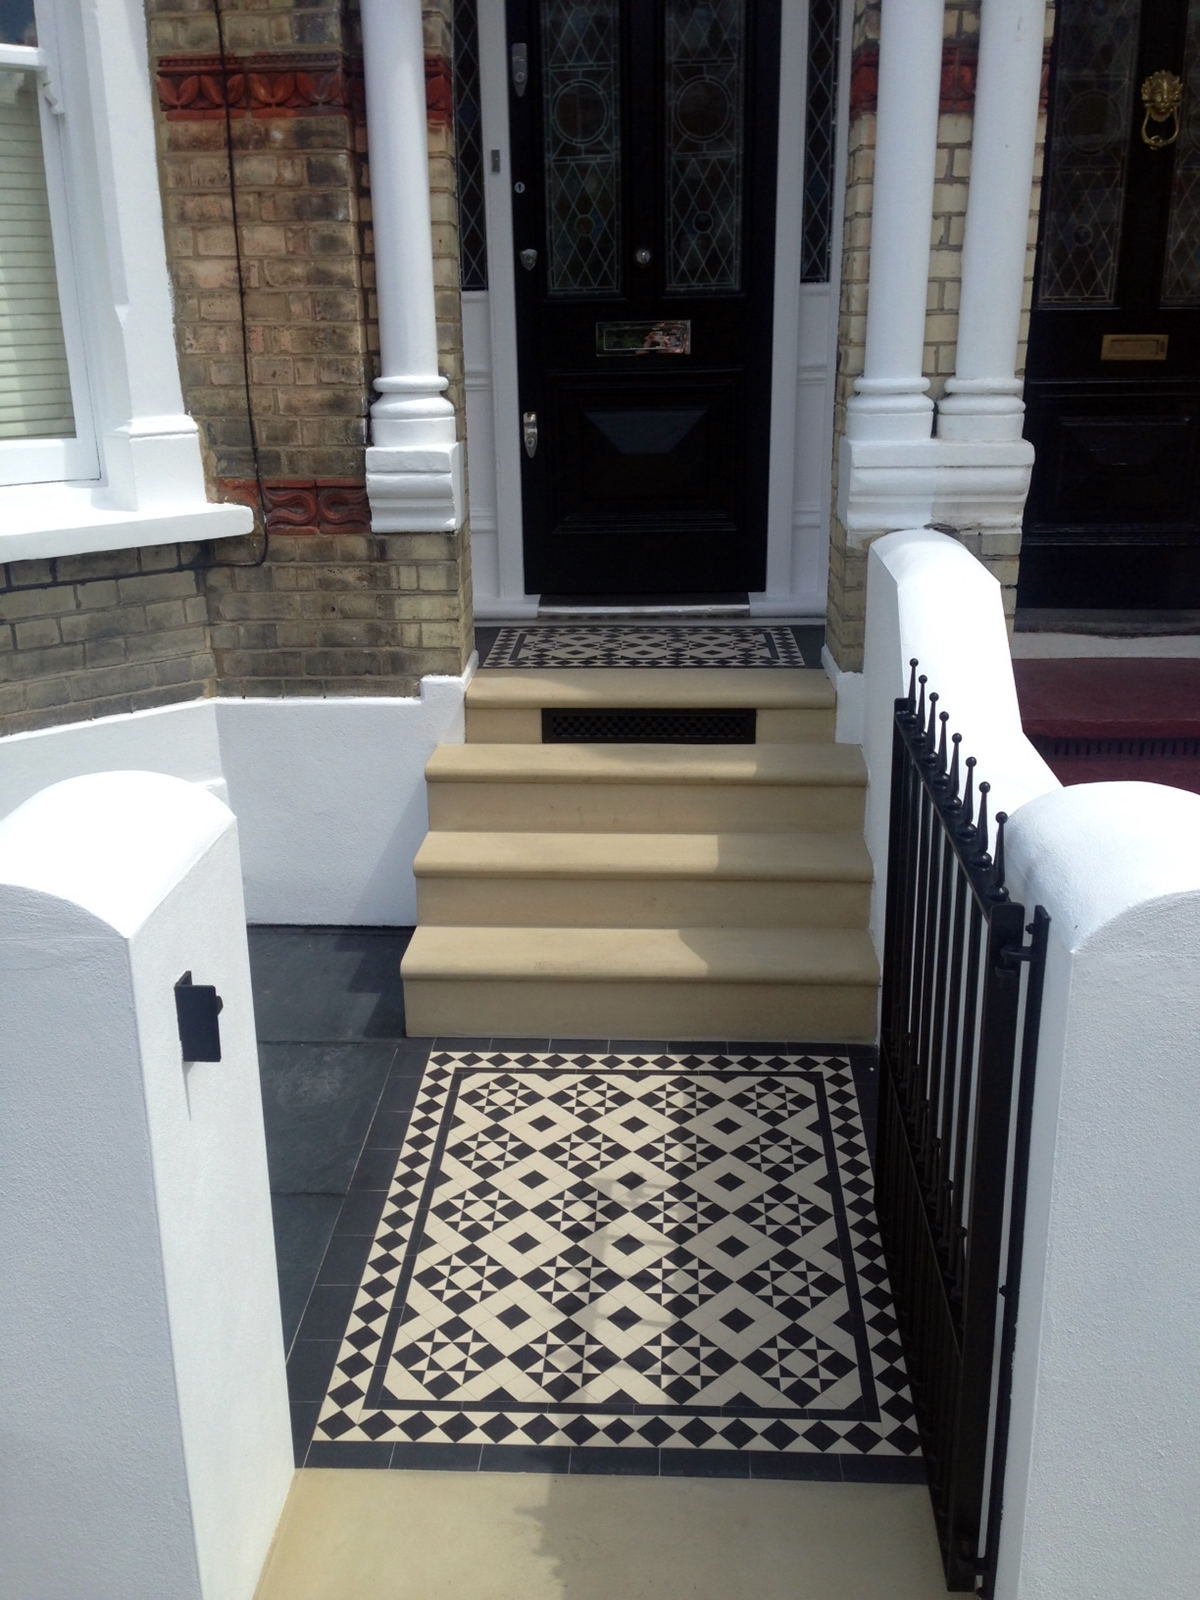 bull nose york stone steps daisy grate victorian mosaic tile path wrought iron rail and gate clapham london rendered painted garden wall black and white